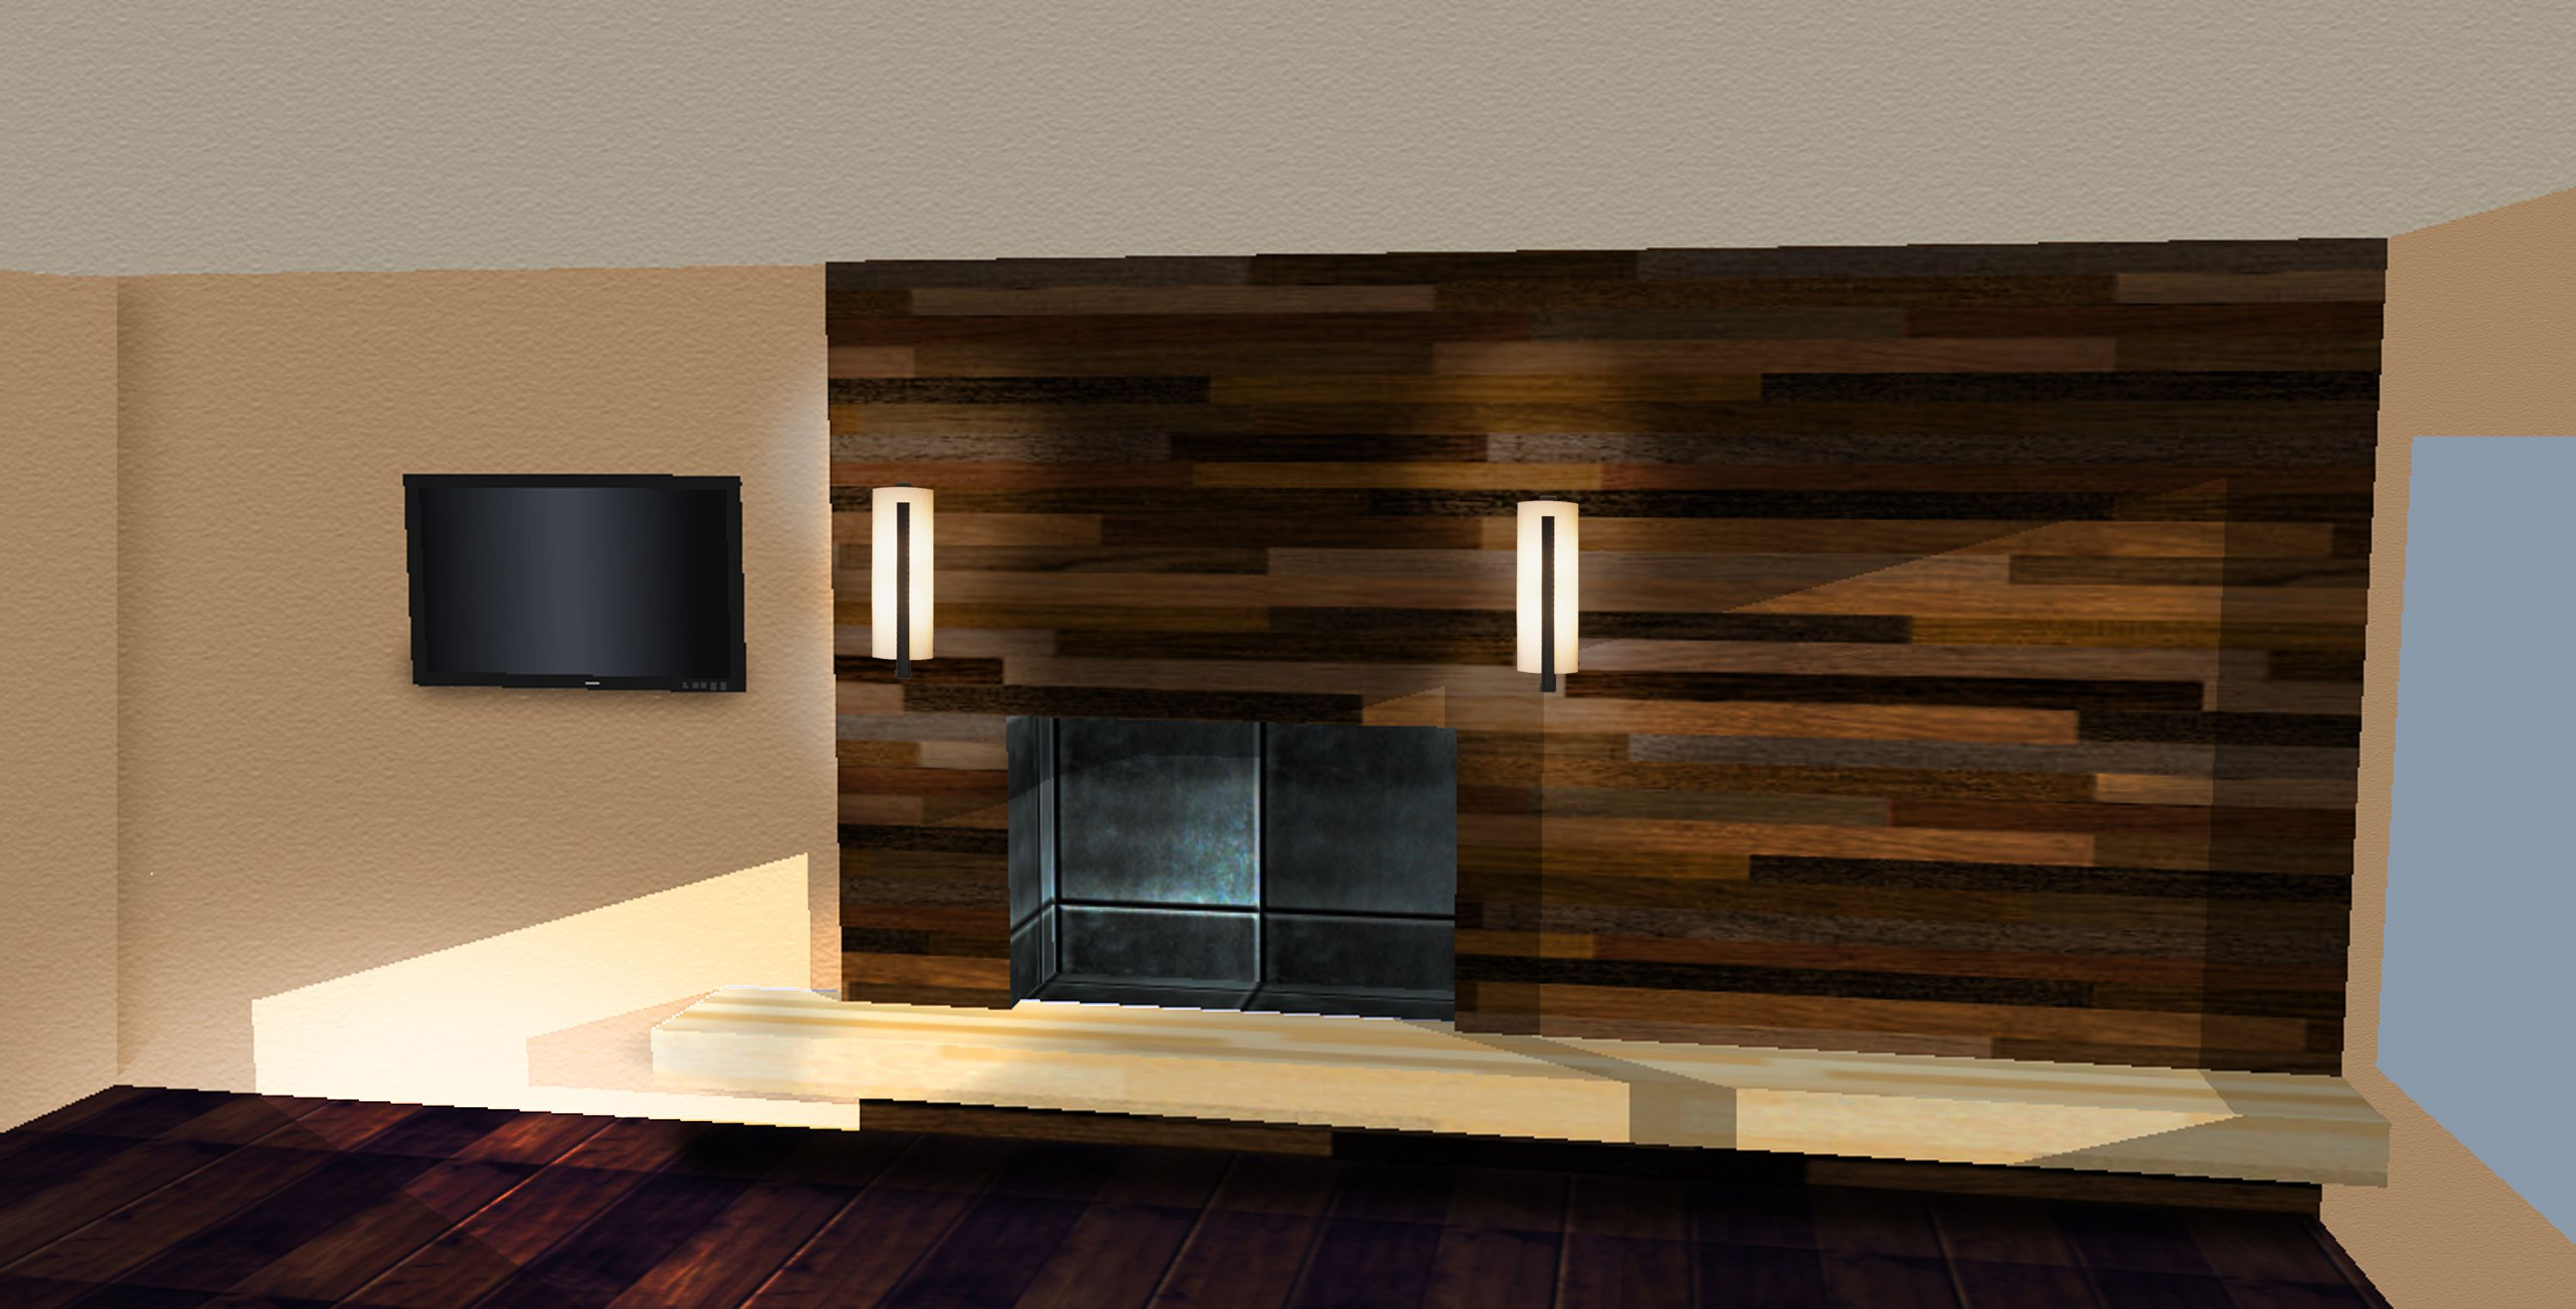 Wood wall designs wood tv wall and wood table for interior wood wall designs wood tv wall and wood table for interior design wall pinterest wood walls wood wall design and electric fireplaces amipublicfo Image collections